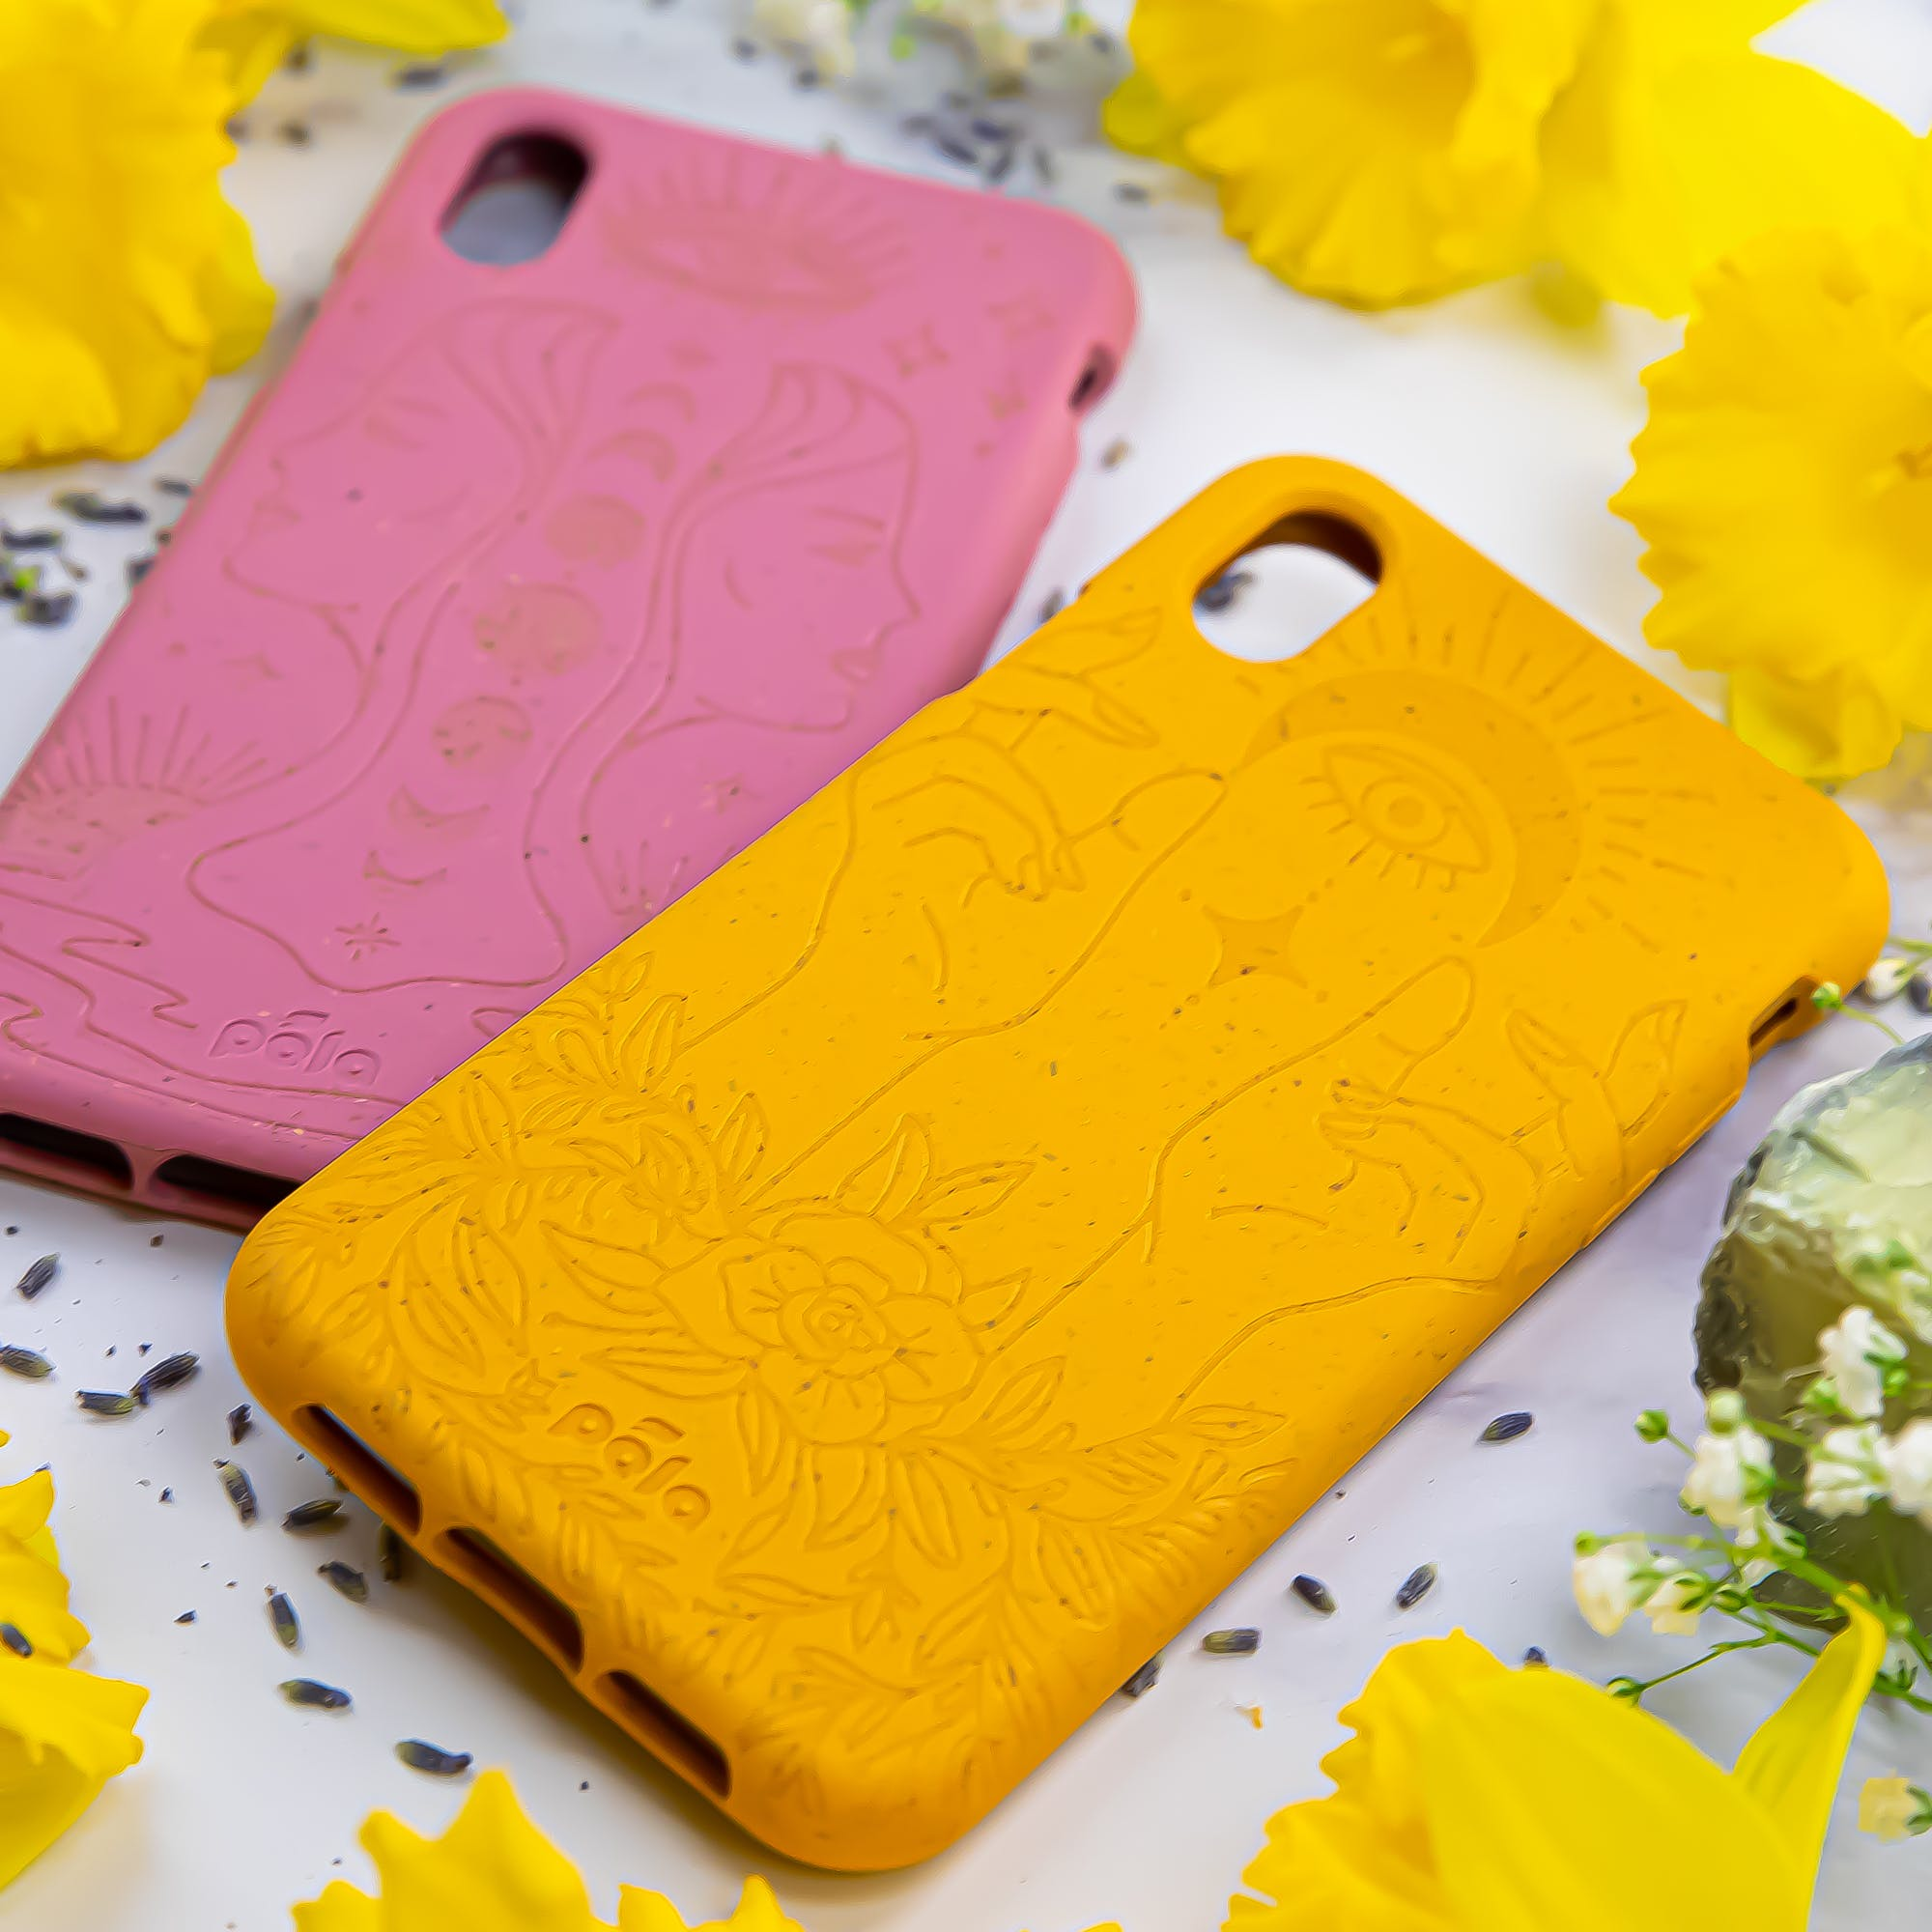 Rise and Reflect biodegradable, eco-friendly Pela phone cases